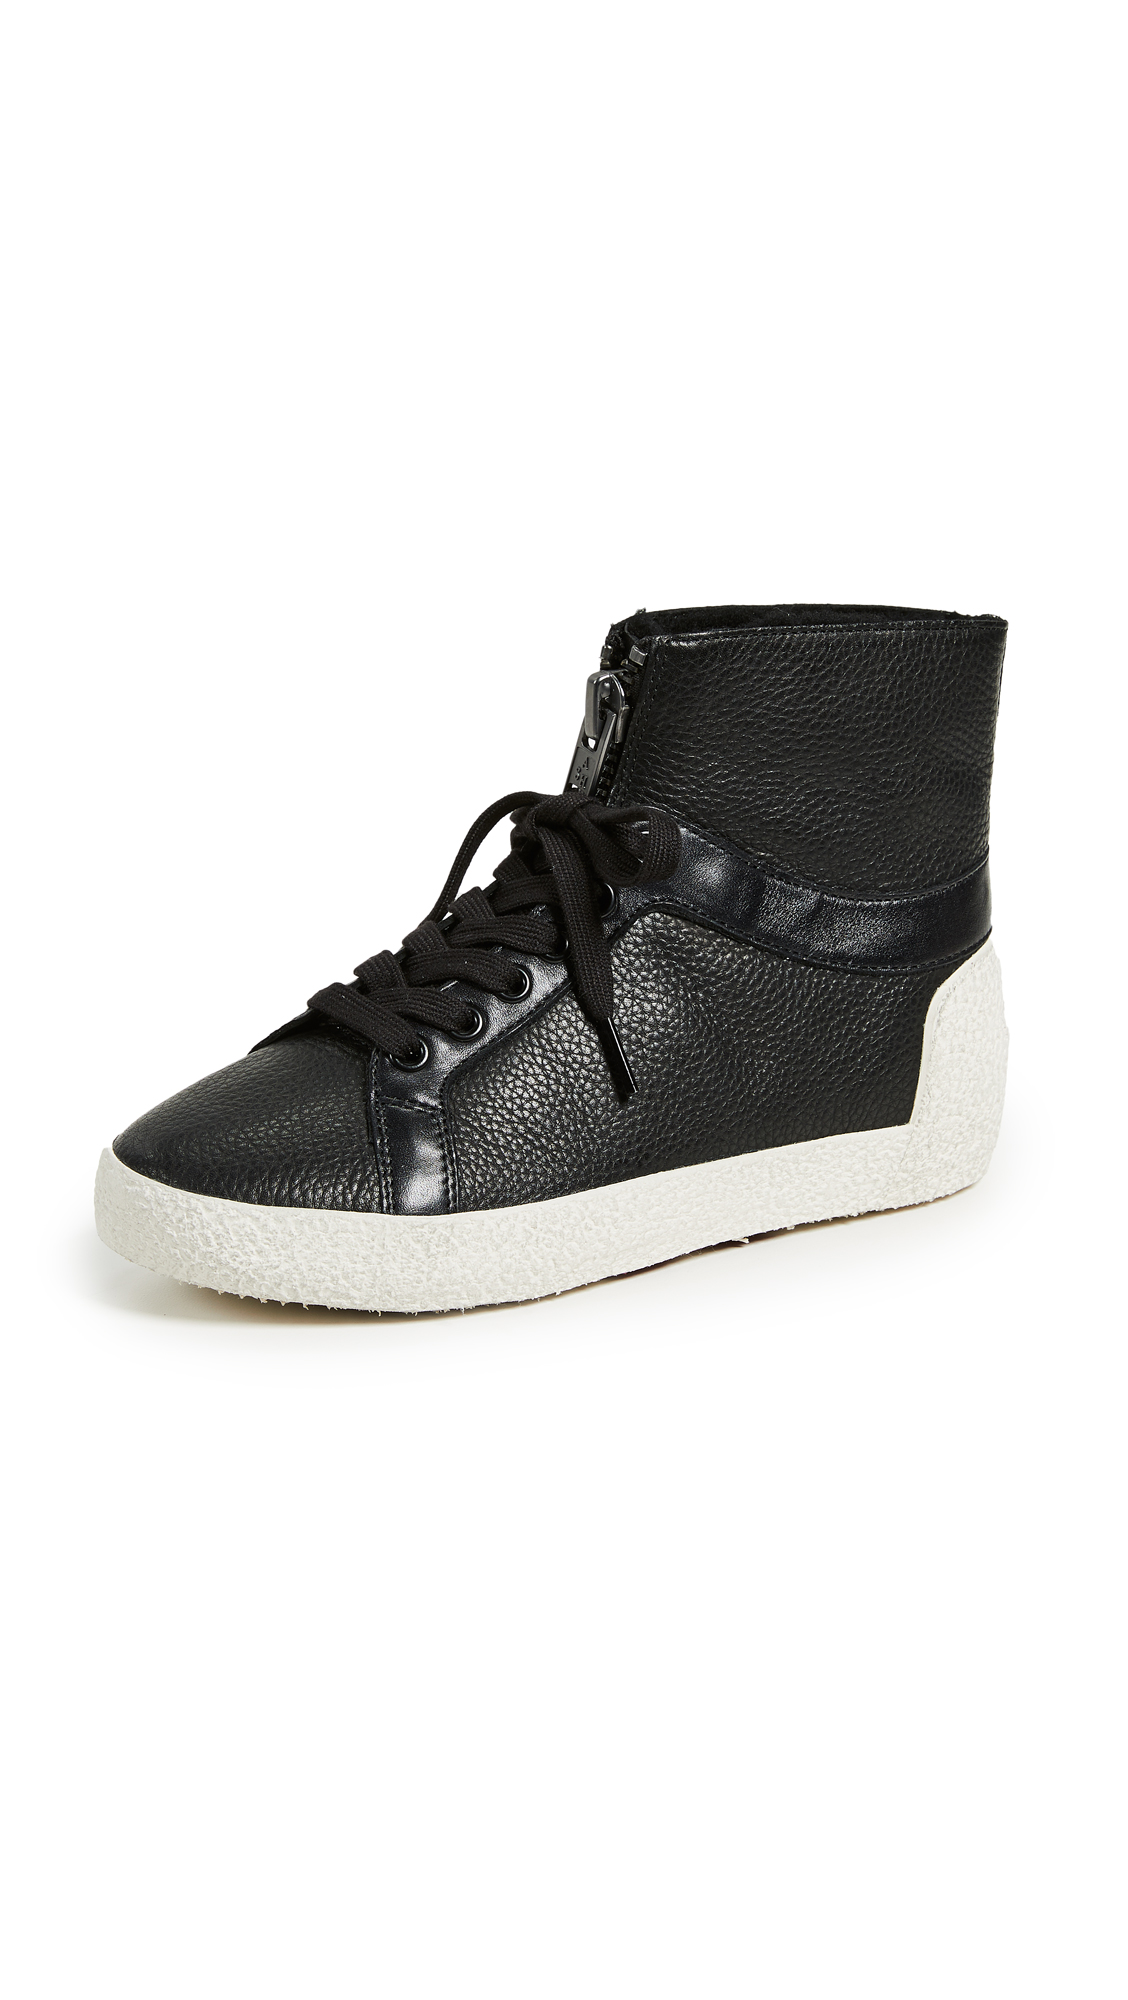 ASH NOMAD SNEAKERS